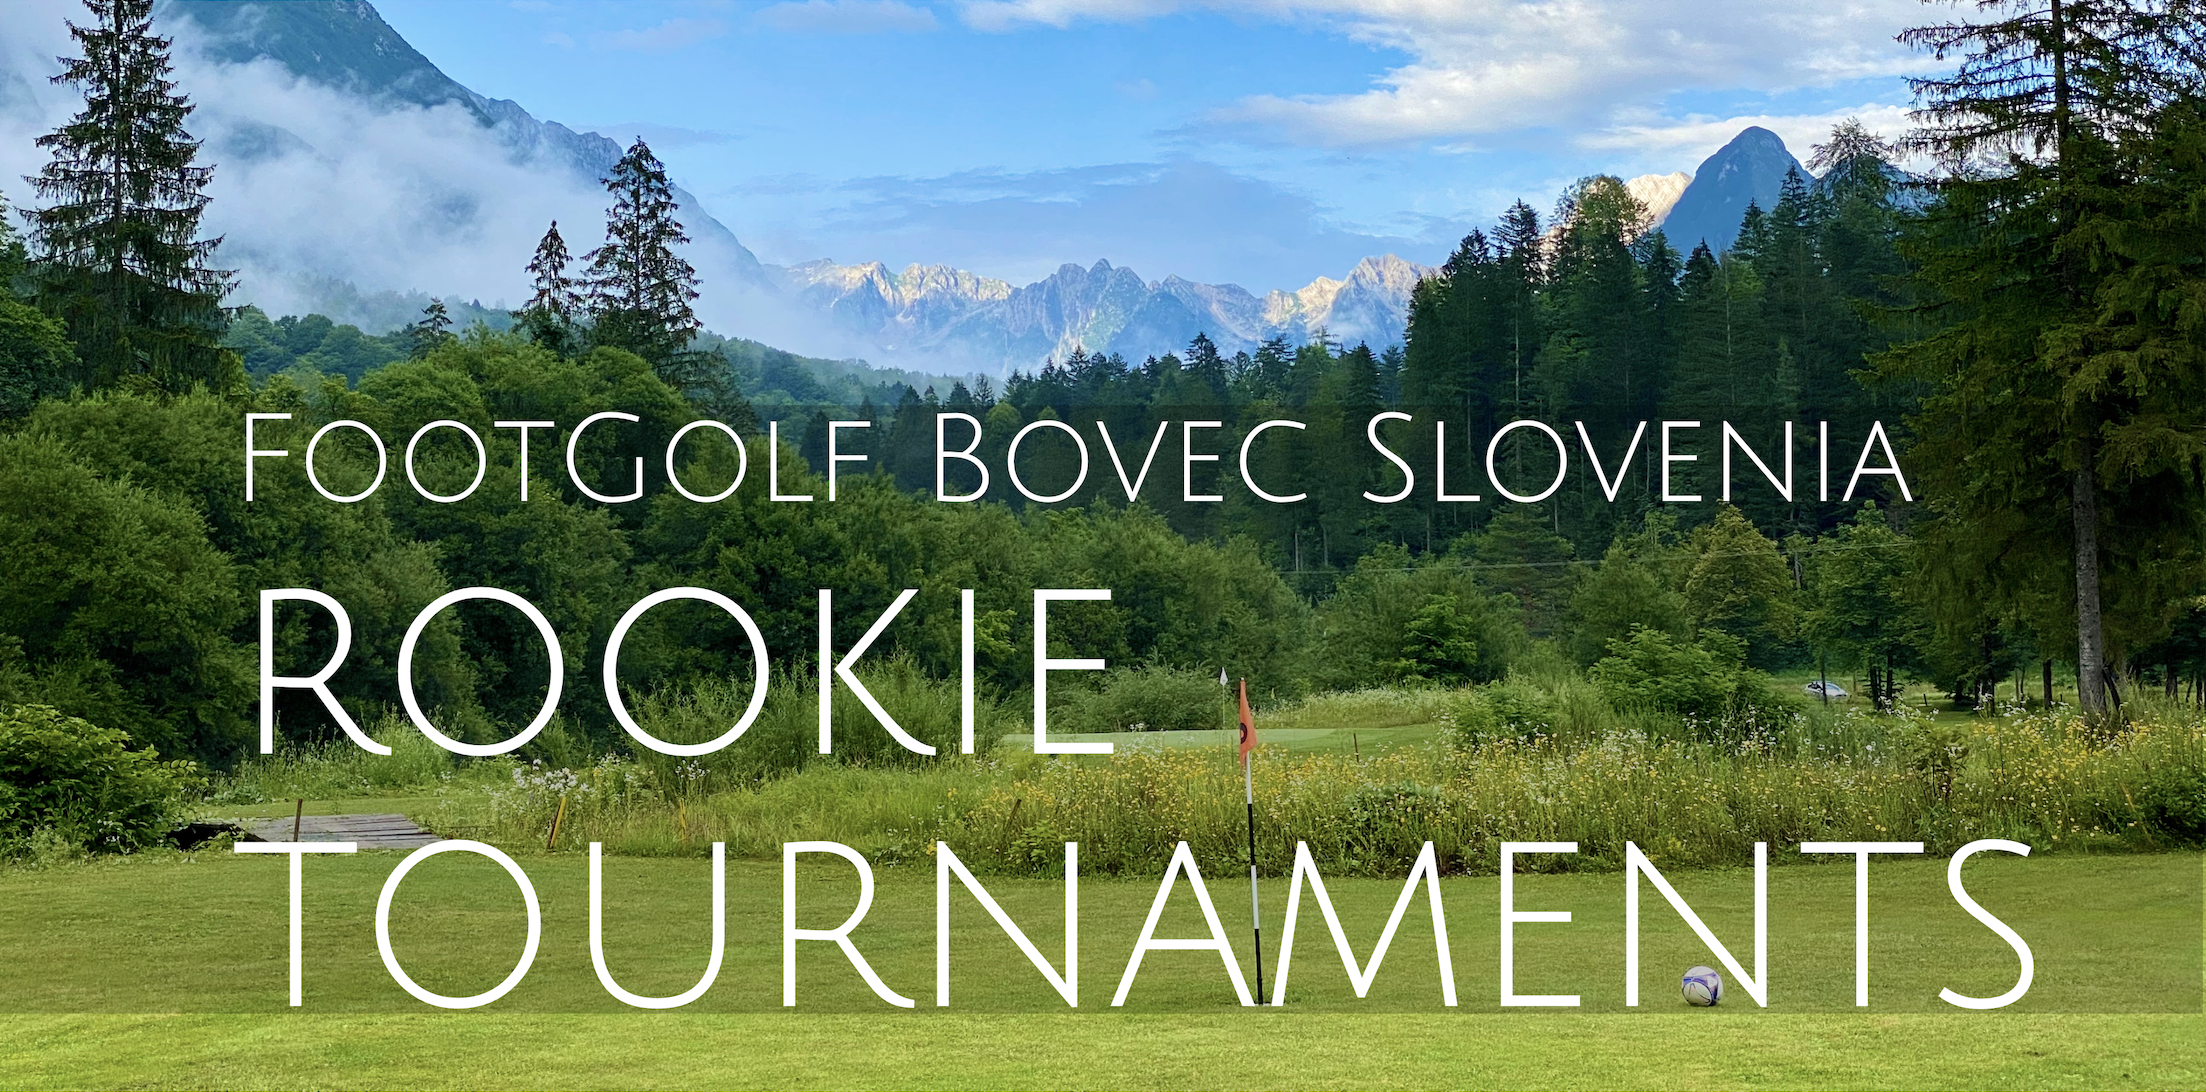 Rookie footgolf tournaments bovec